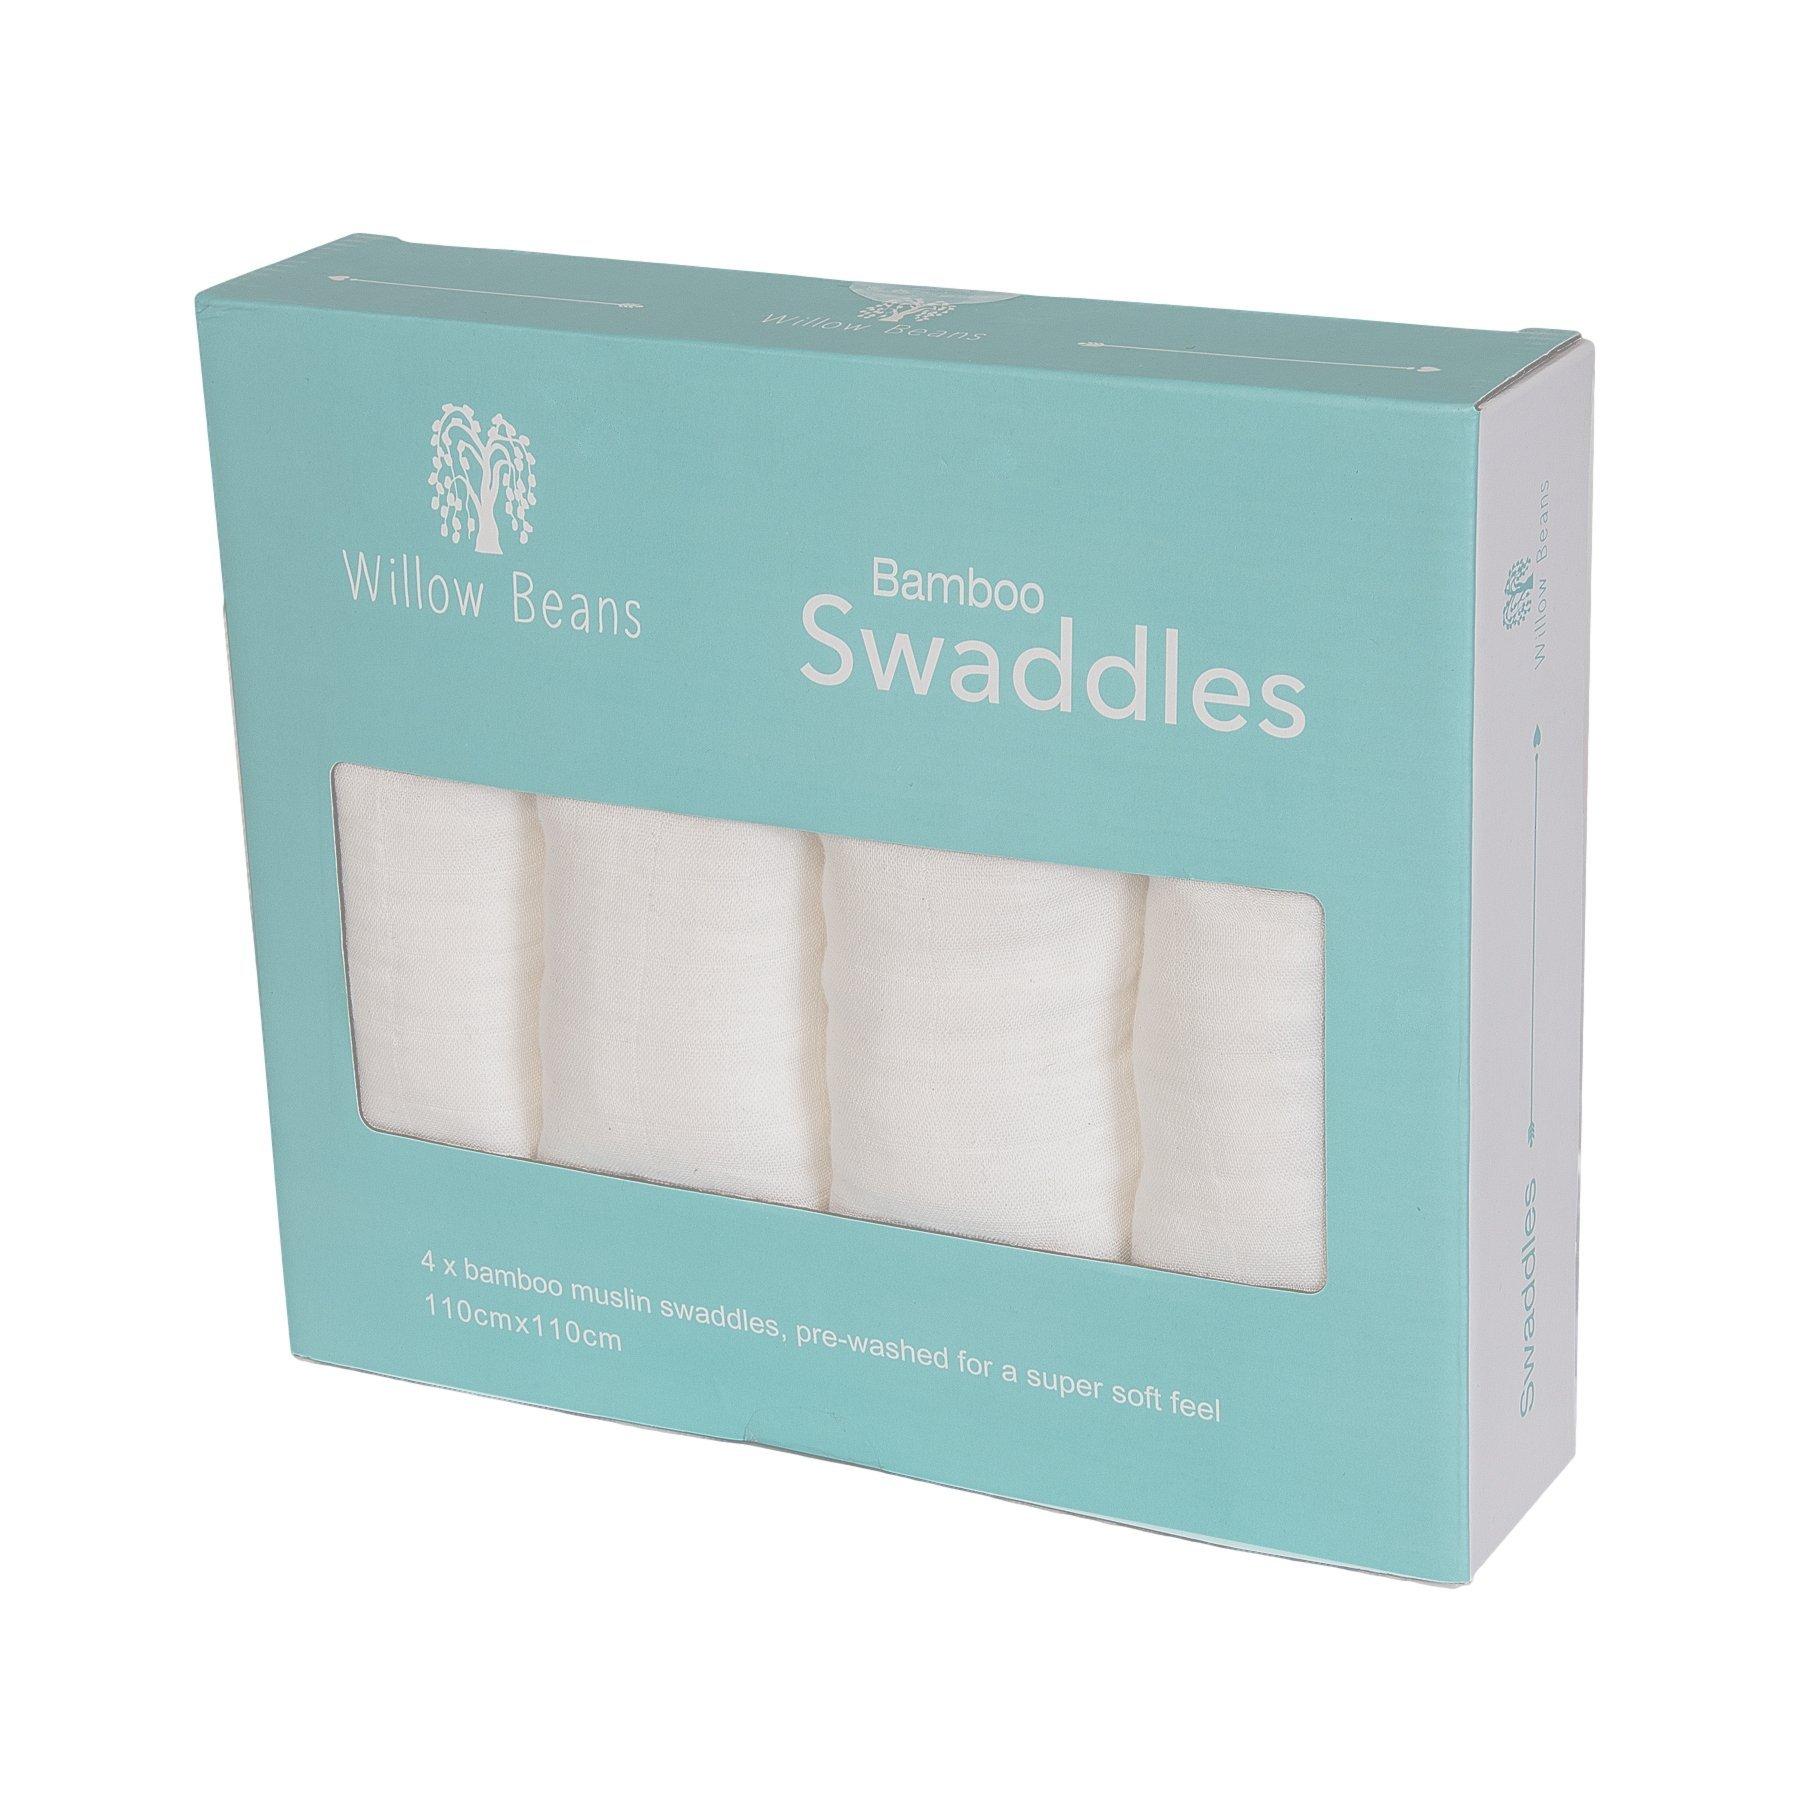 Willow Beans Baby Bamboo Swaddle Blankets, Pack of 4